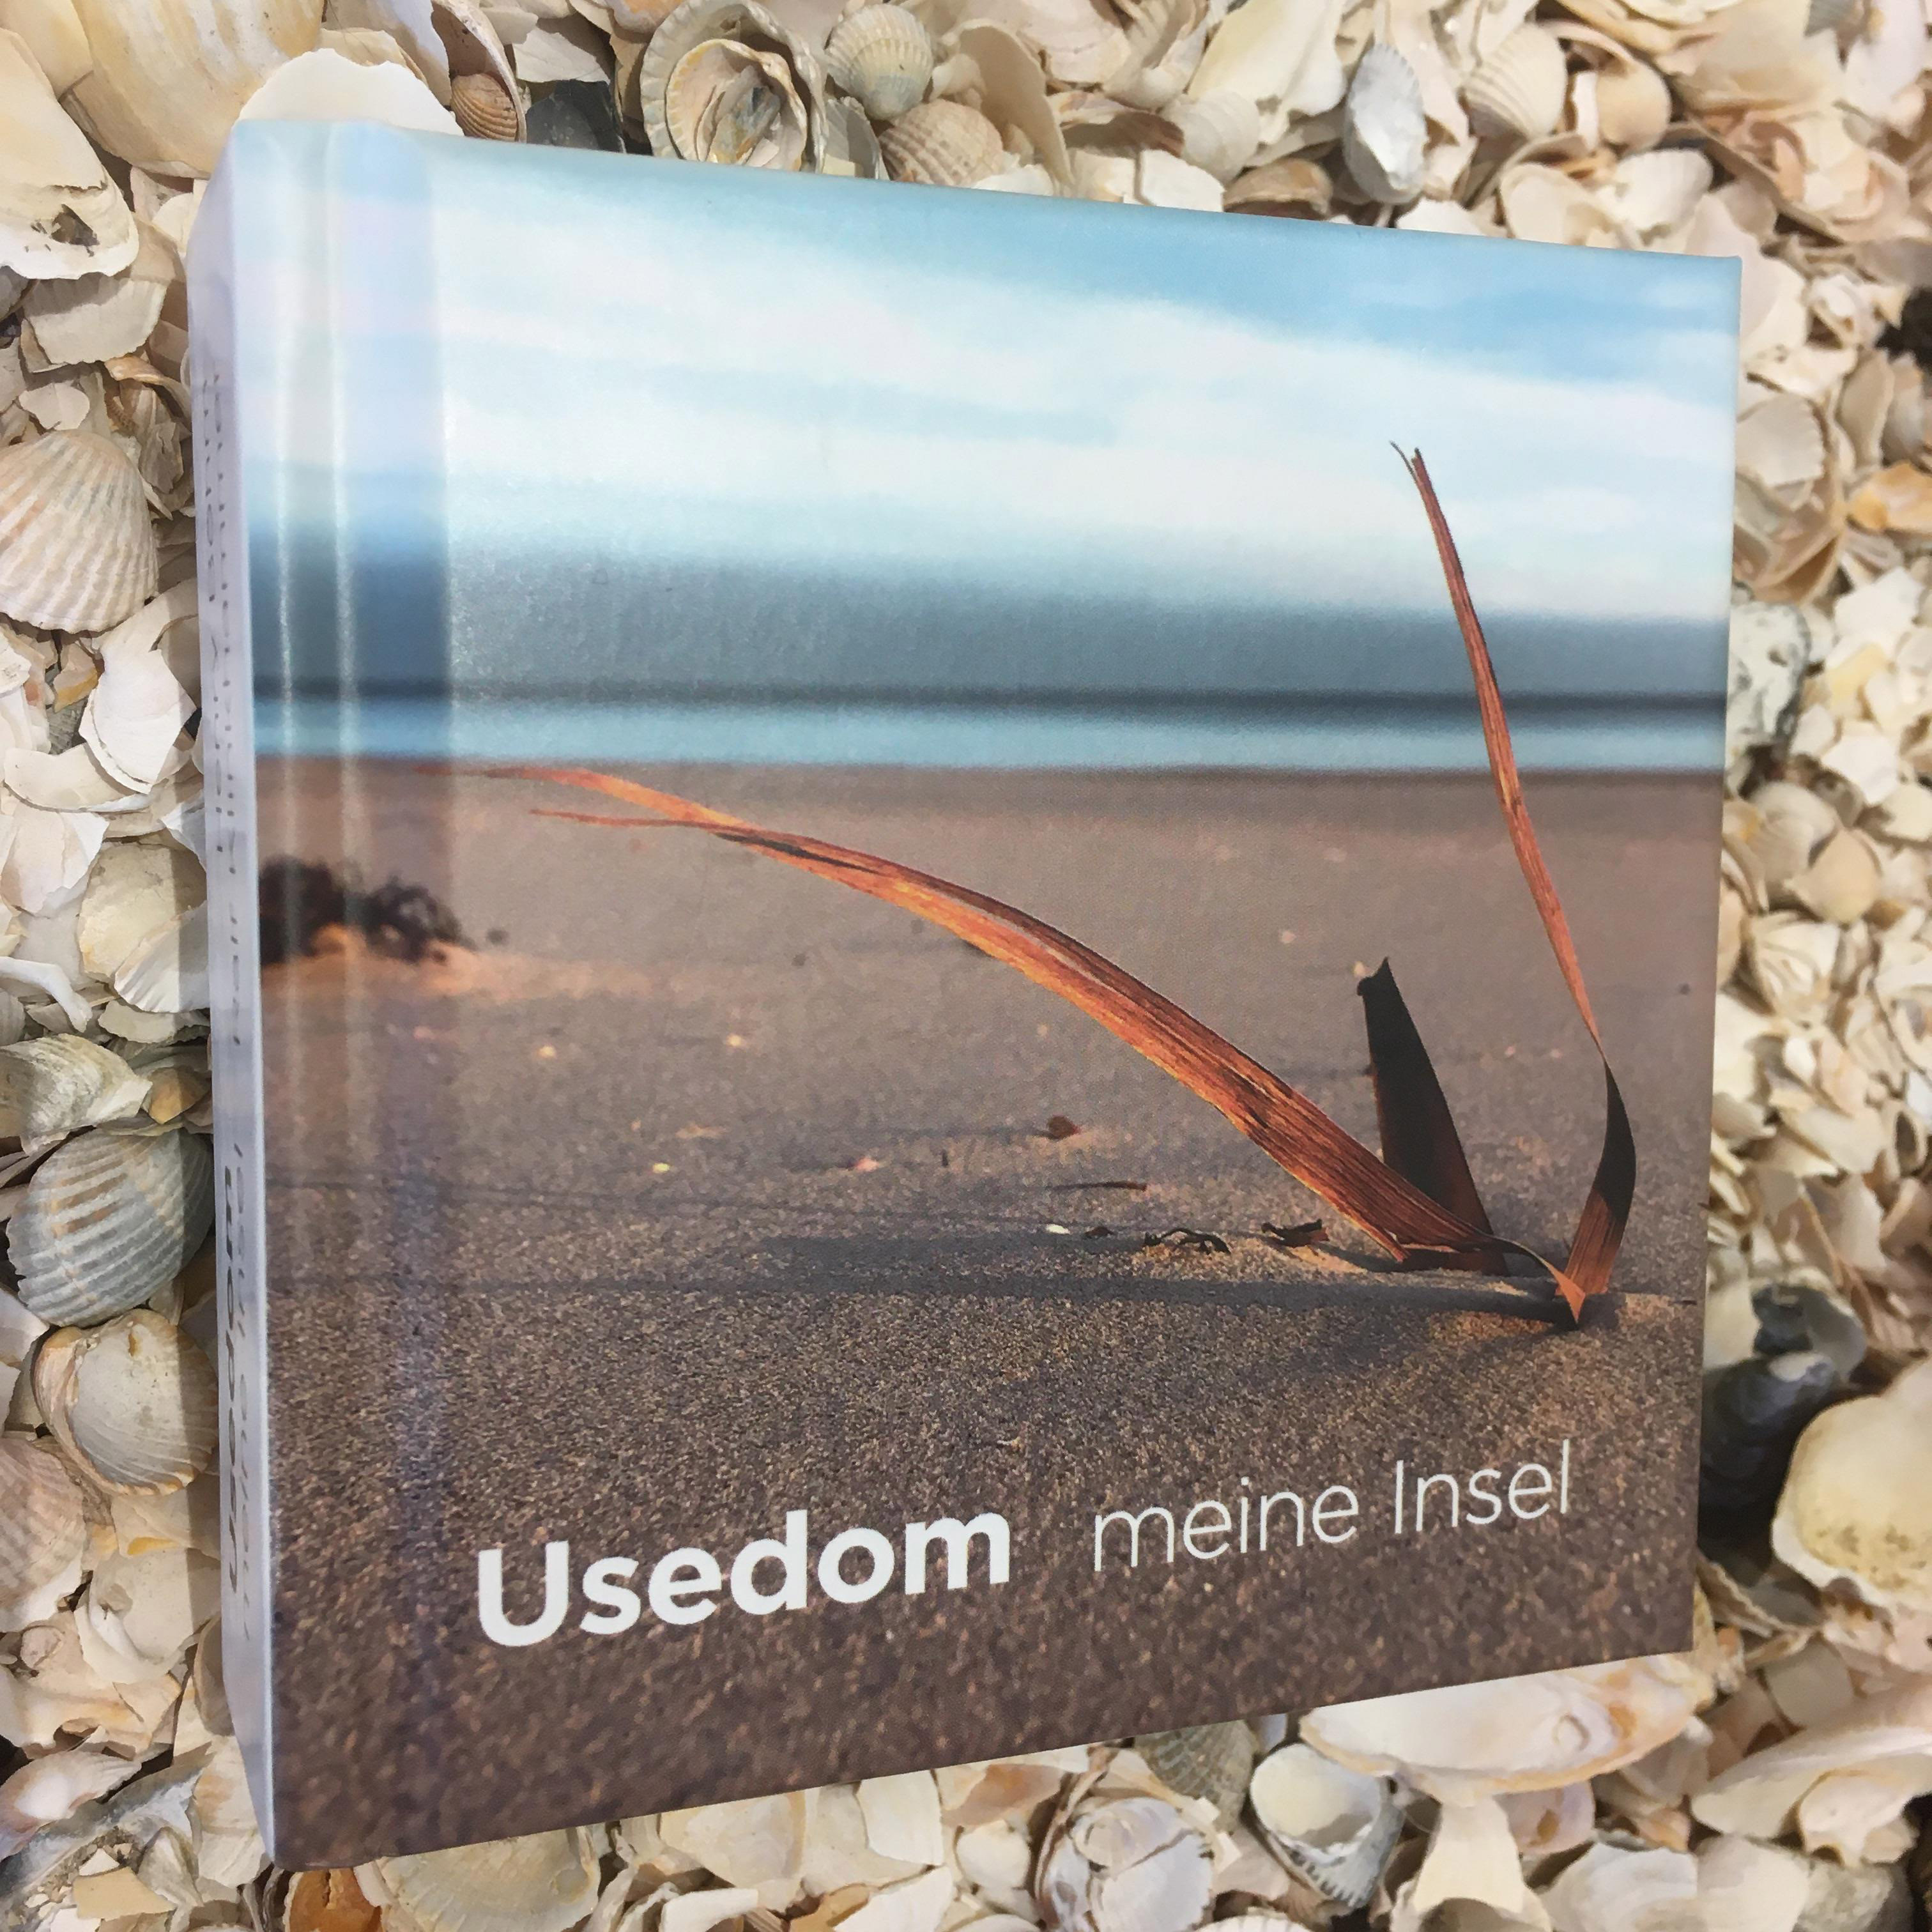 Usedom meine Insel